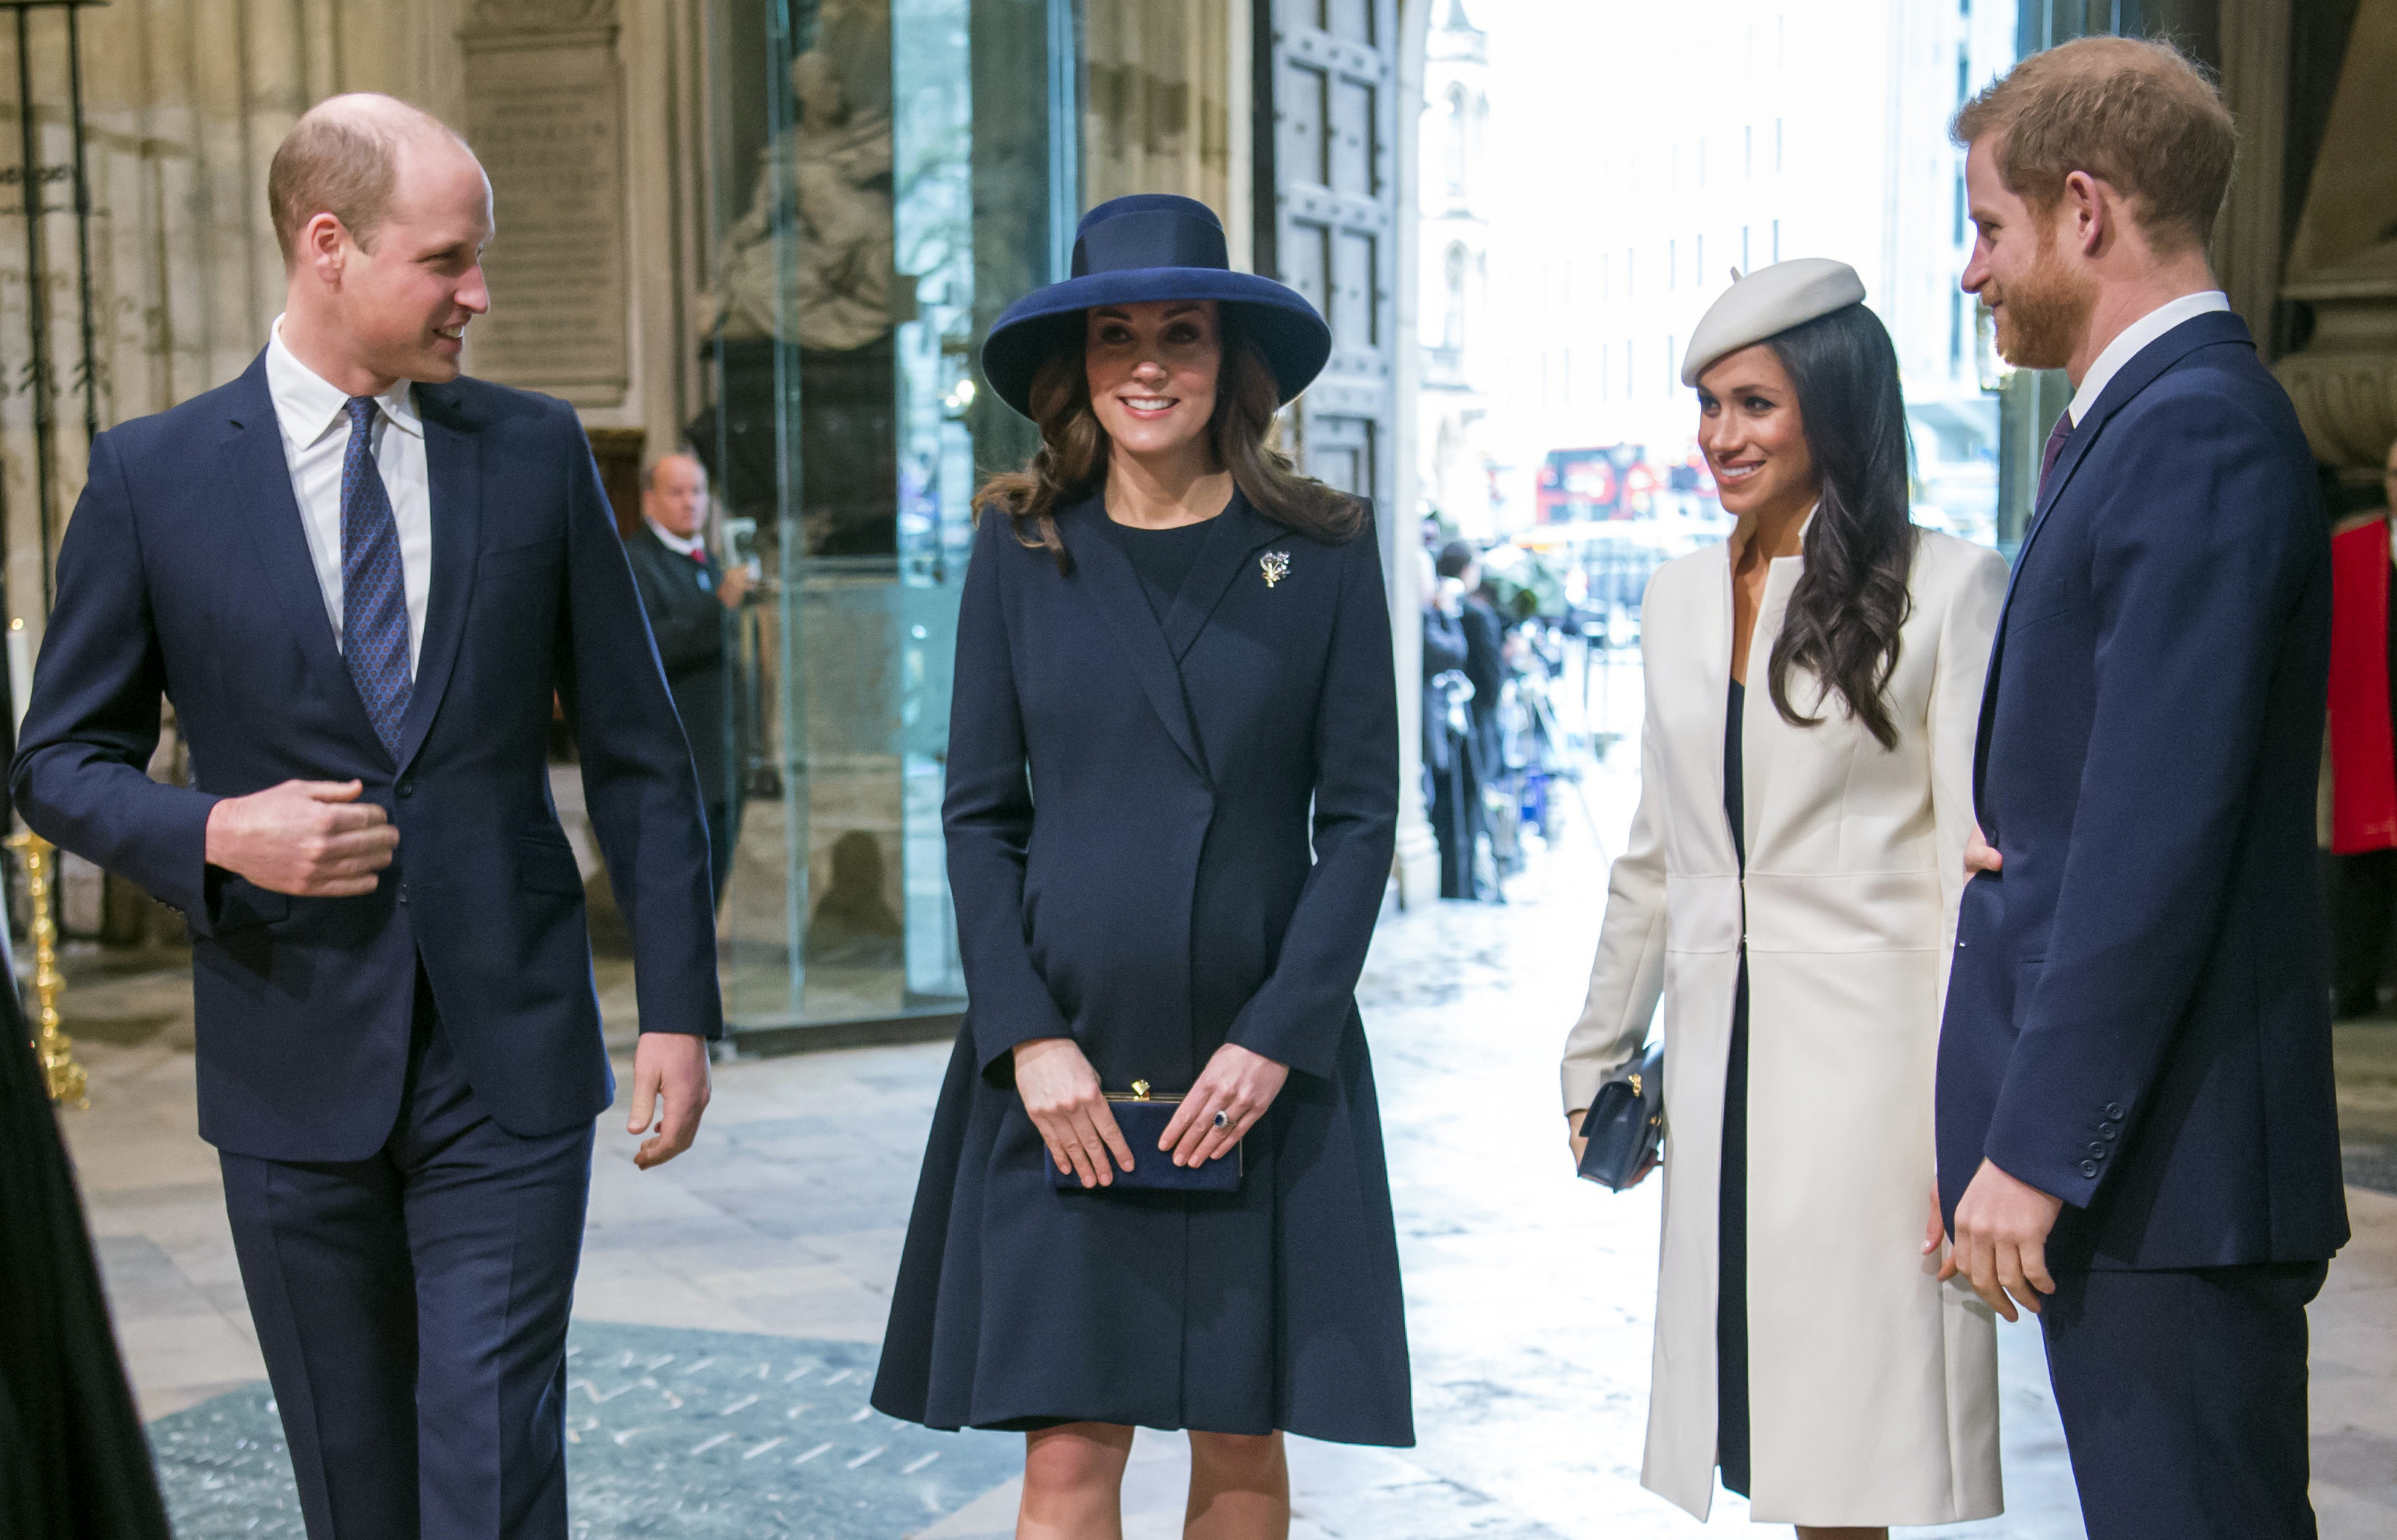 "<div class=""meta image-caption""><div class=""origin-logo origin-image none""><span>none</span></div><span class=""caption-text"">Britain's Prince William, Kate the Duchess of Cambridge, Meghan Markle and Britain's Prince Harry arrive for the Commonwealth Service at Westminster Abbey on March 12, 2018. (Paul Grover/Pool Photo via AP)</span></div>"